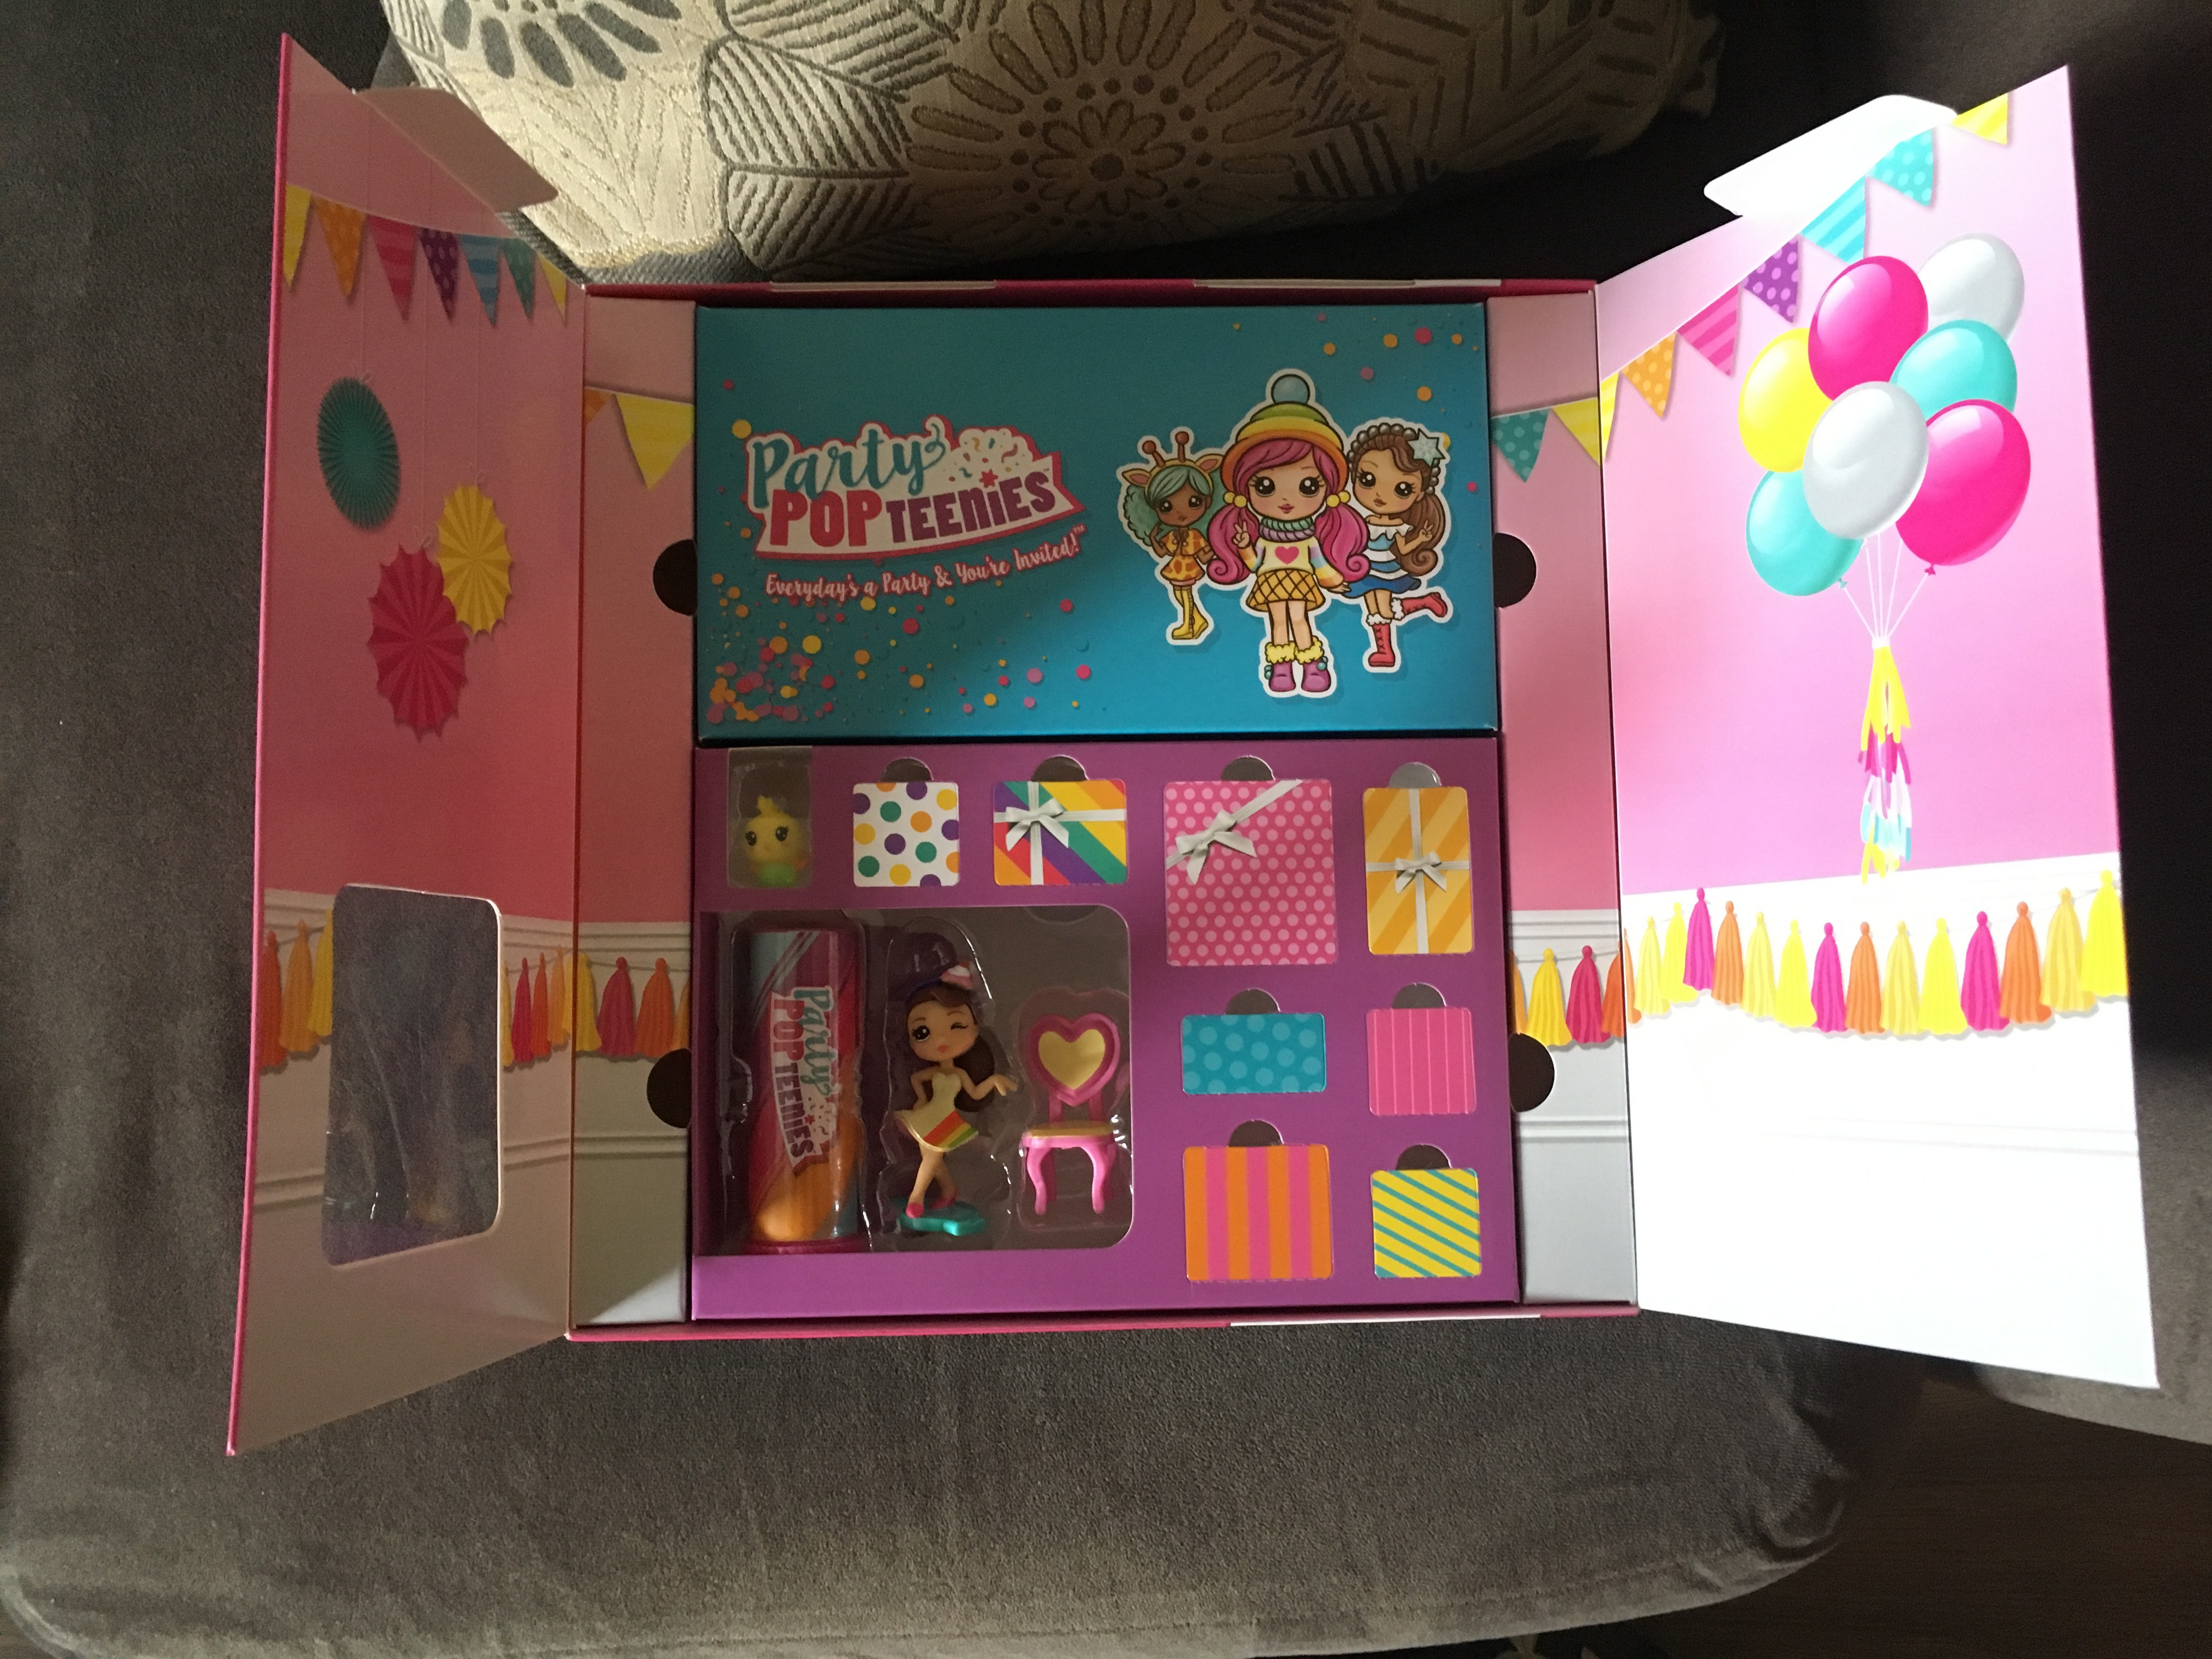 party popteenies party surprise box playset reviews in dolls and accessories